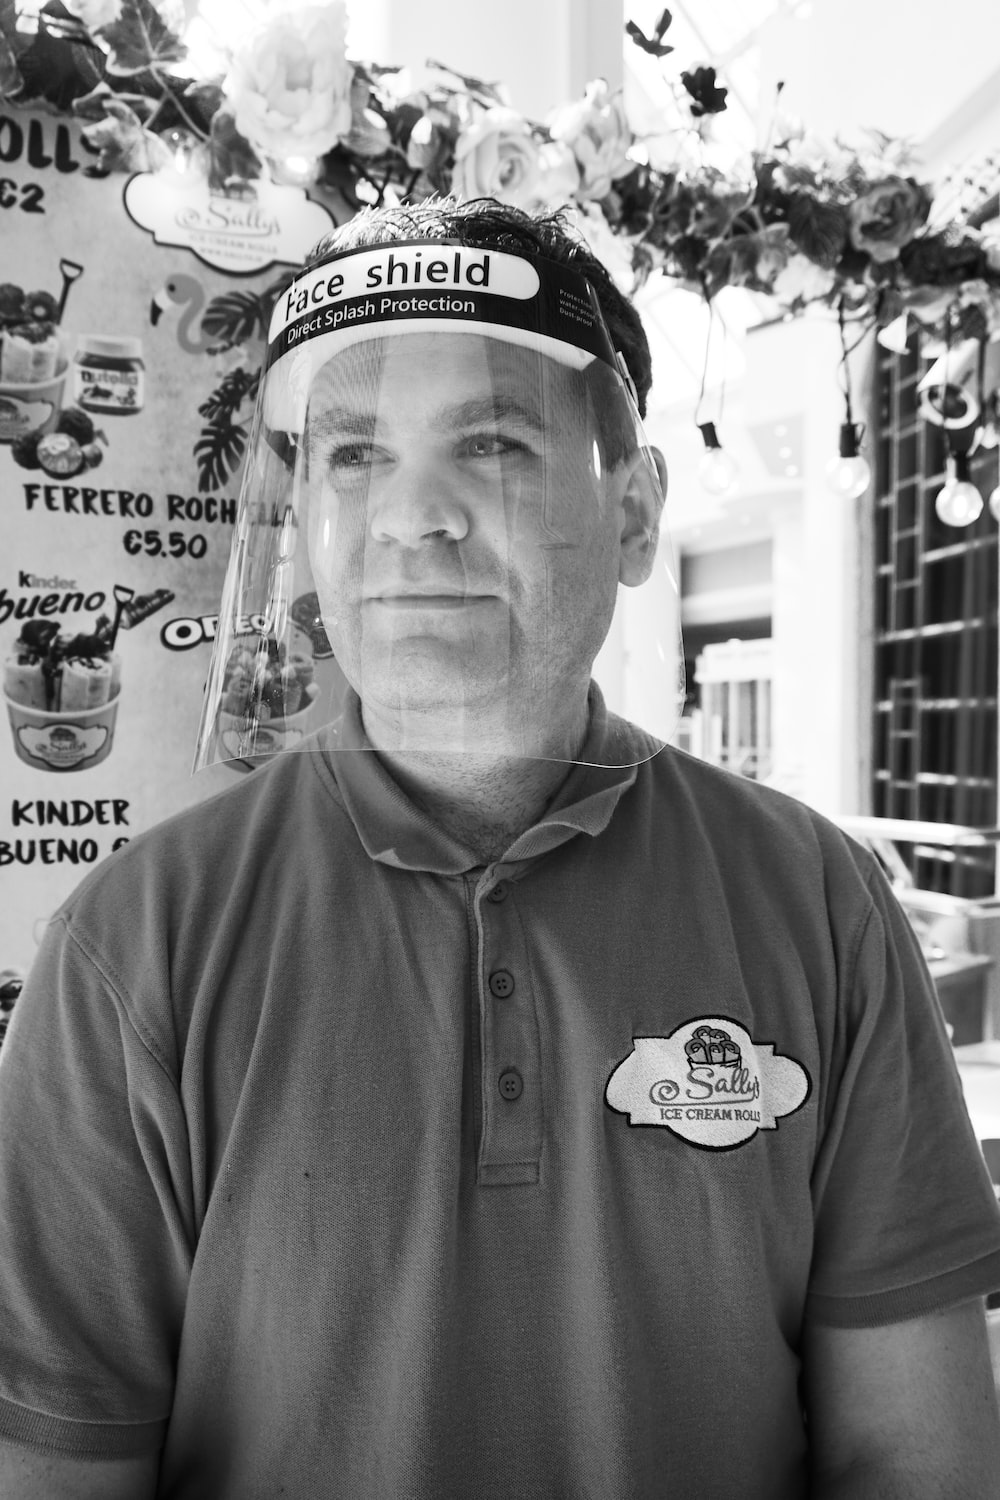 man in black polo shirt wearing black and white fitted cap